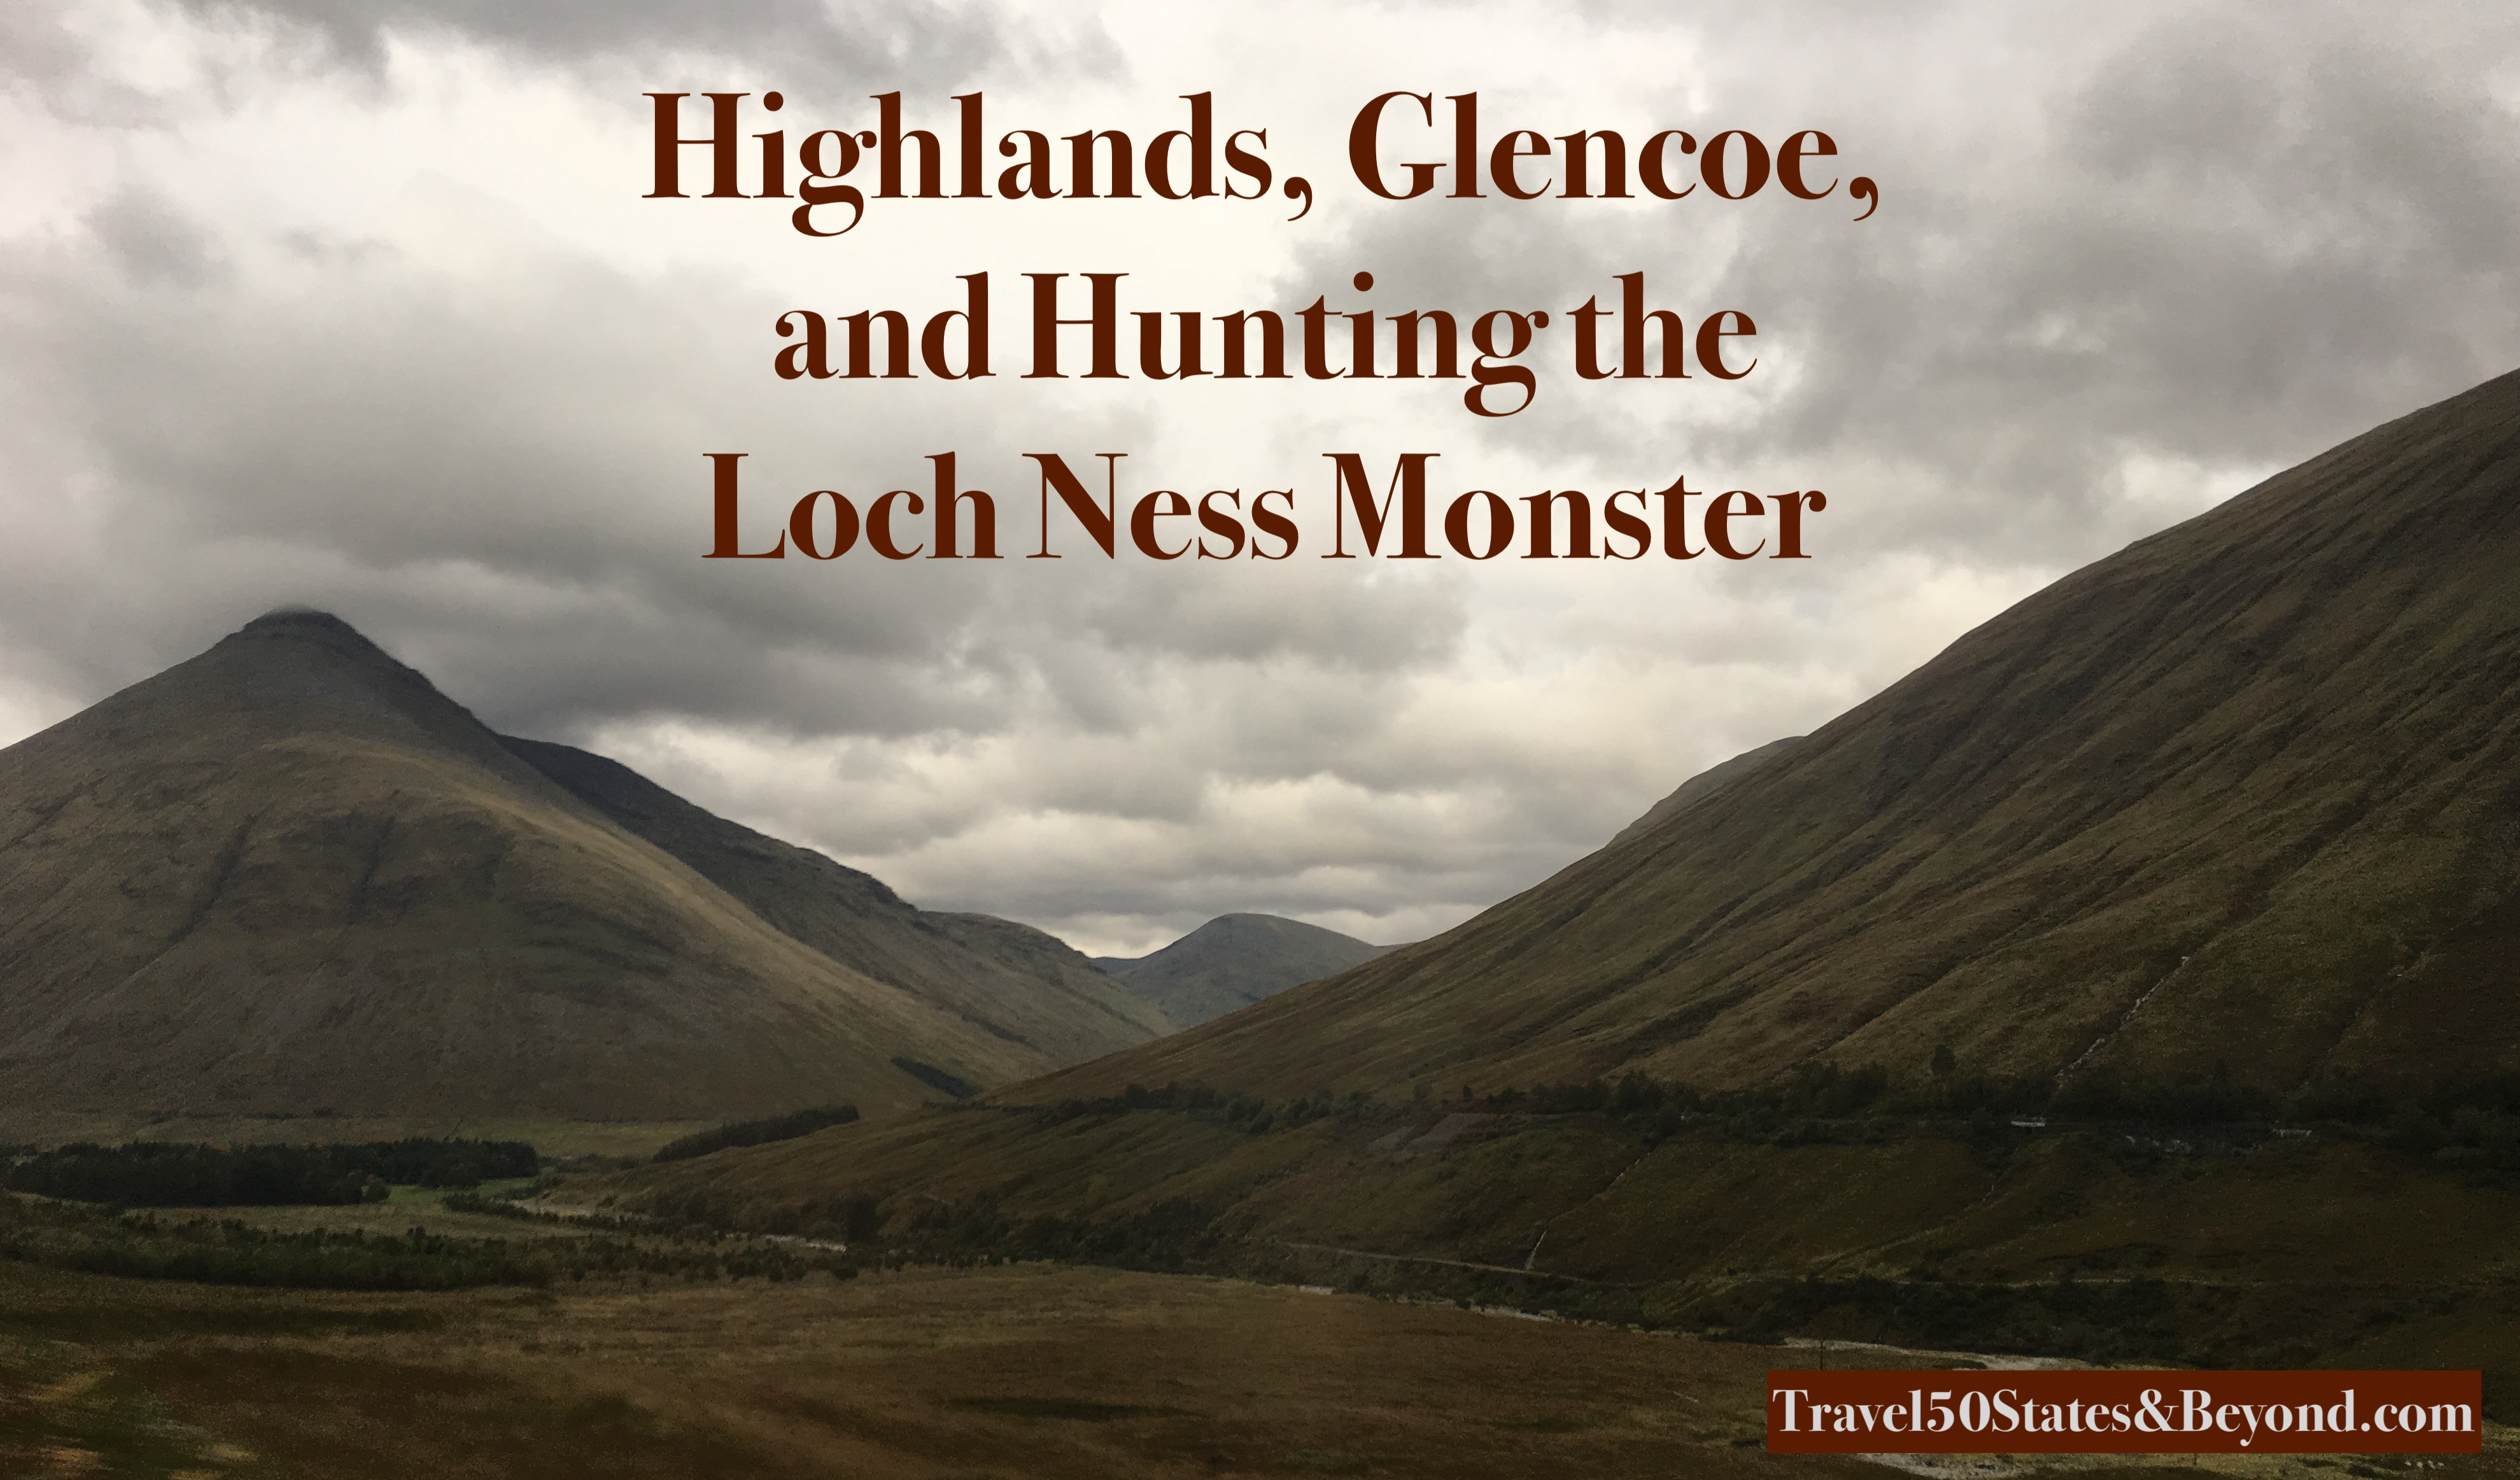 The Highlands, Glencoe, and the Hunt for Nessie